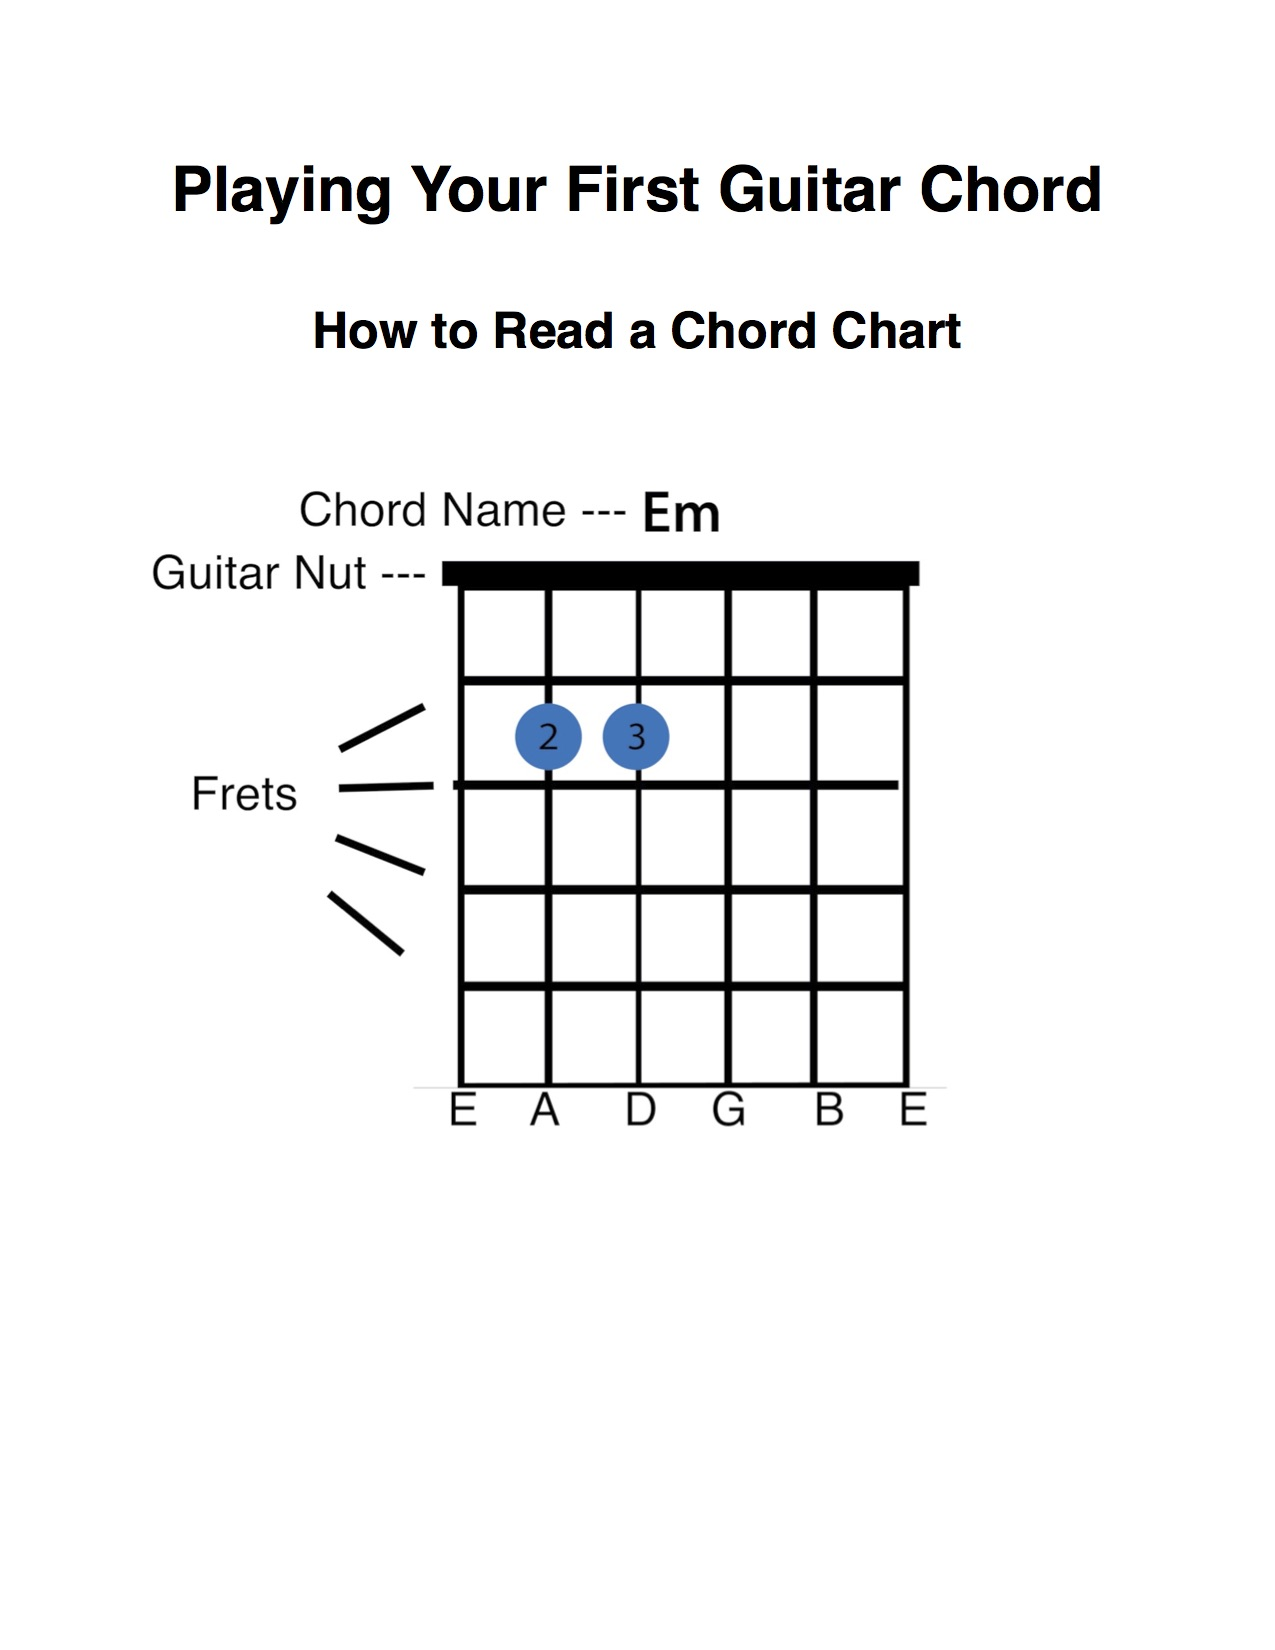 Chords on Guitar: How to Play Your First Guitar Chord